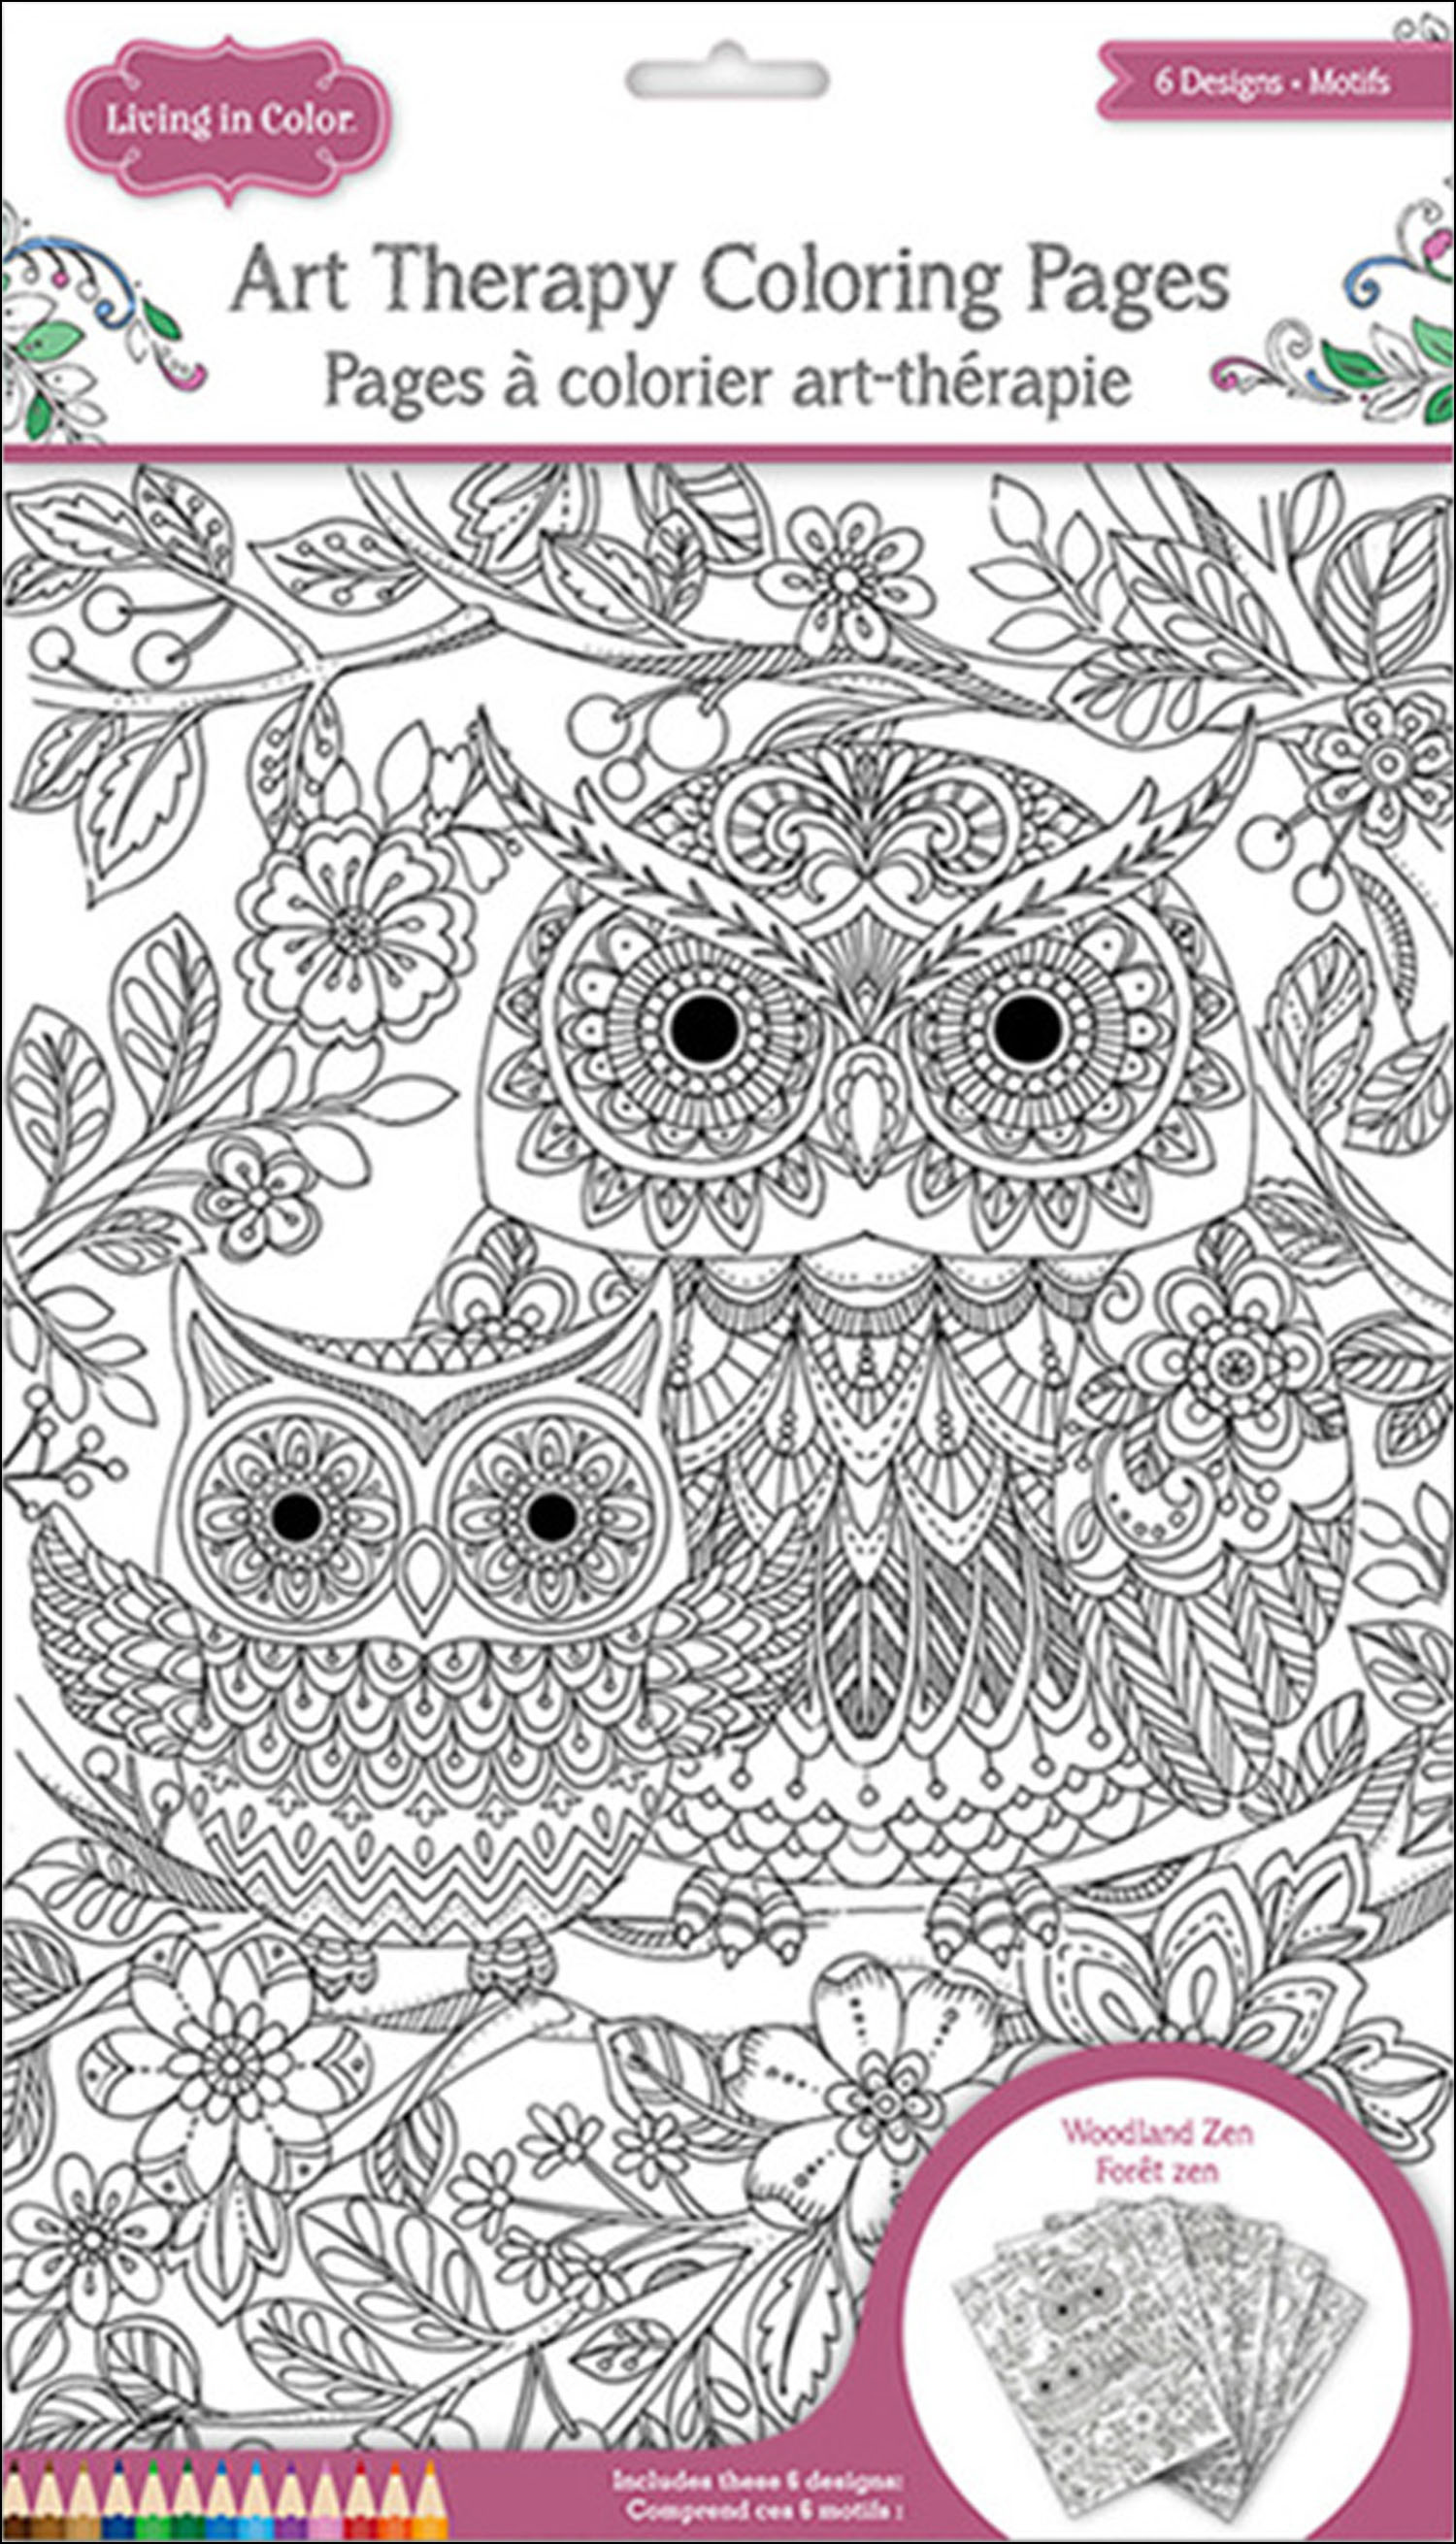 multicraft lic art therapy color pages woodlandzen createforless